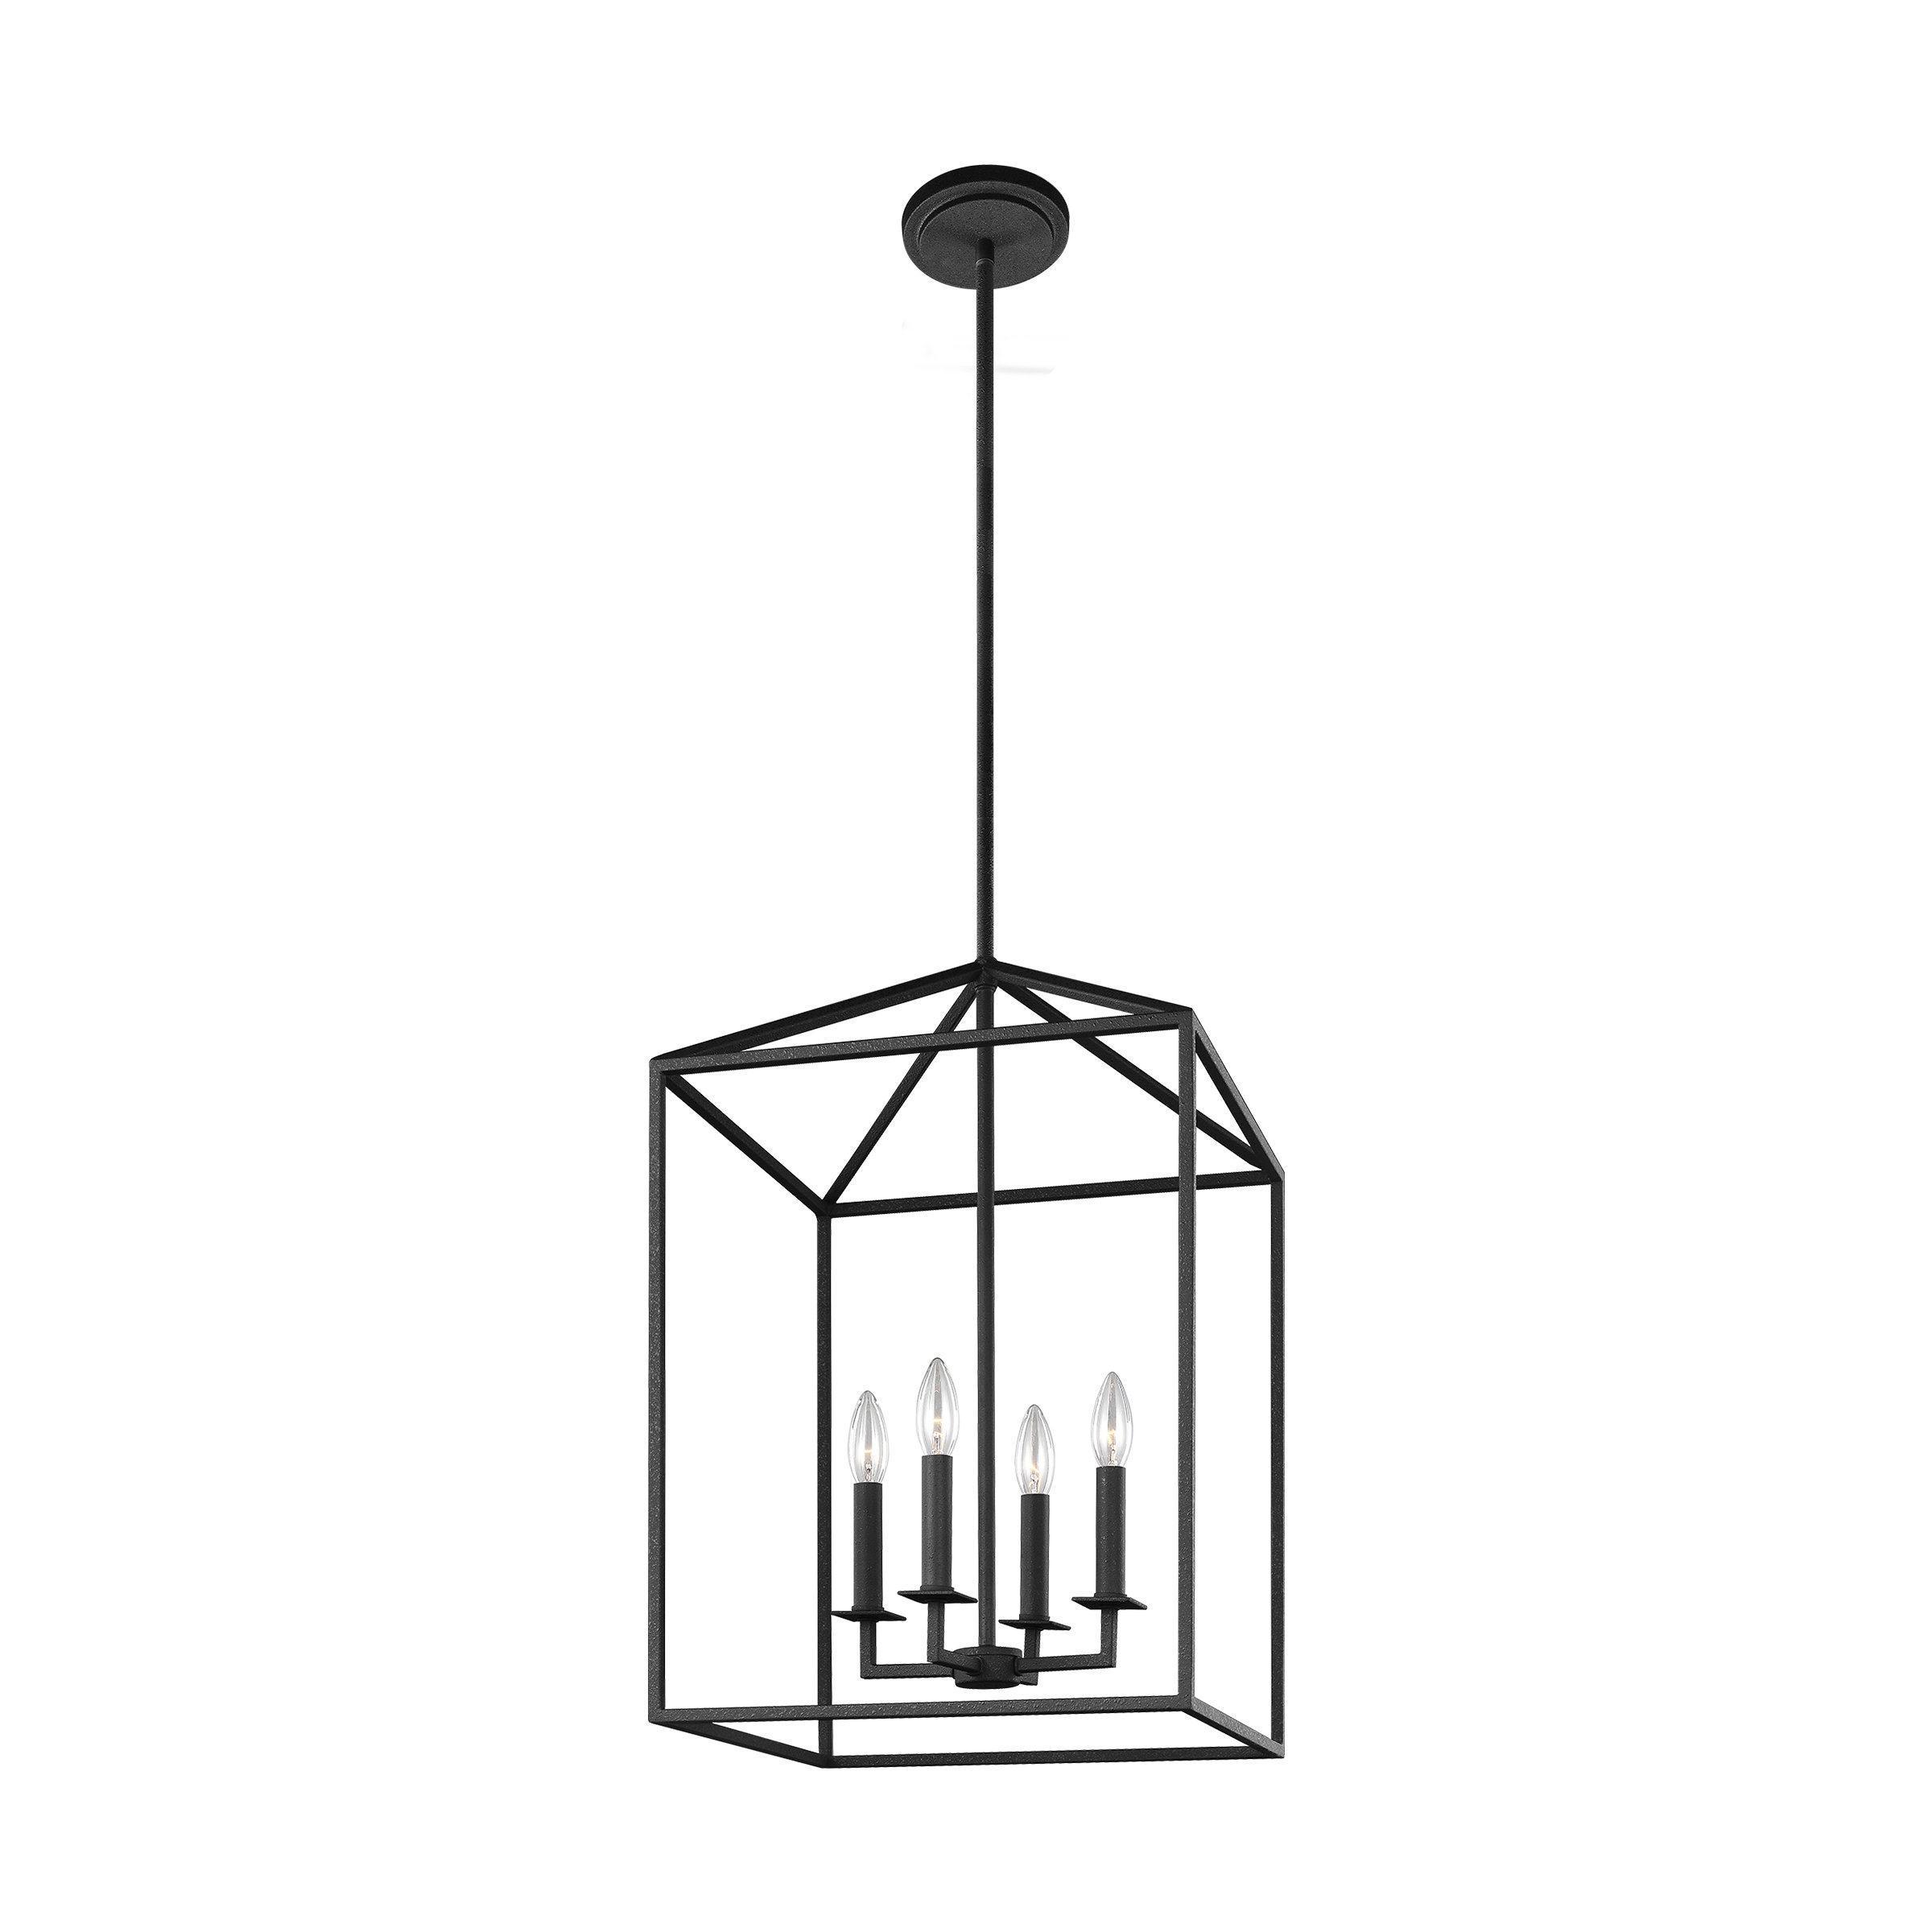 Odie 4 Light Lantern Square/rectangle Pendant Within Well Known Odie 8 Light Kitchen Island Square / Rectangle Pendants (View 11 of 25)